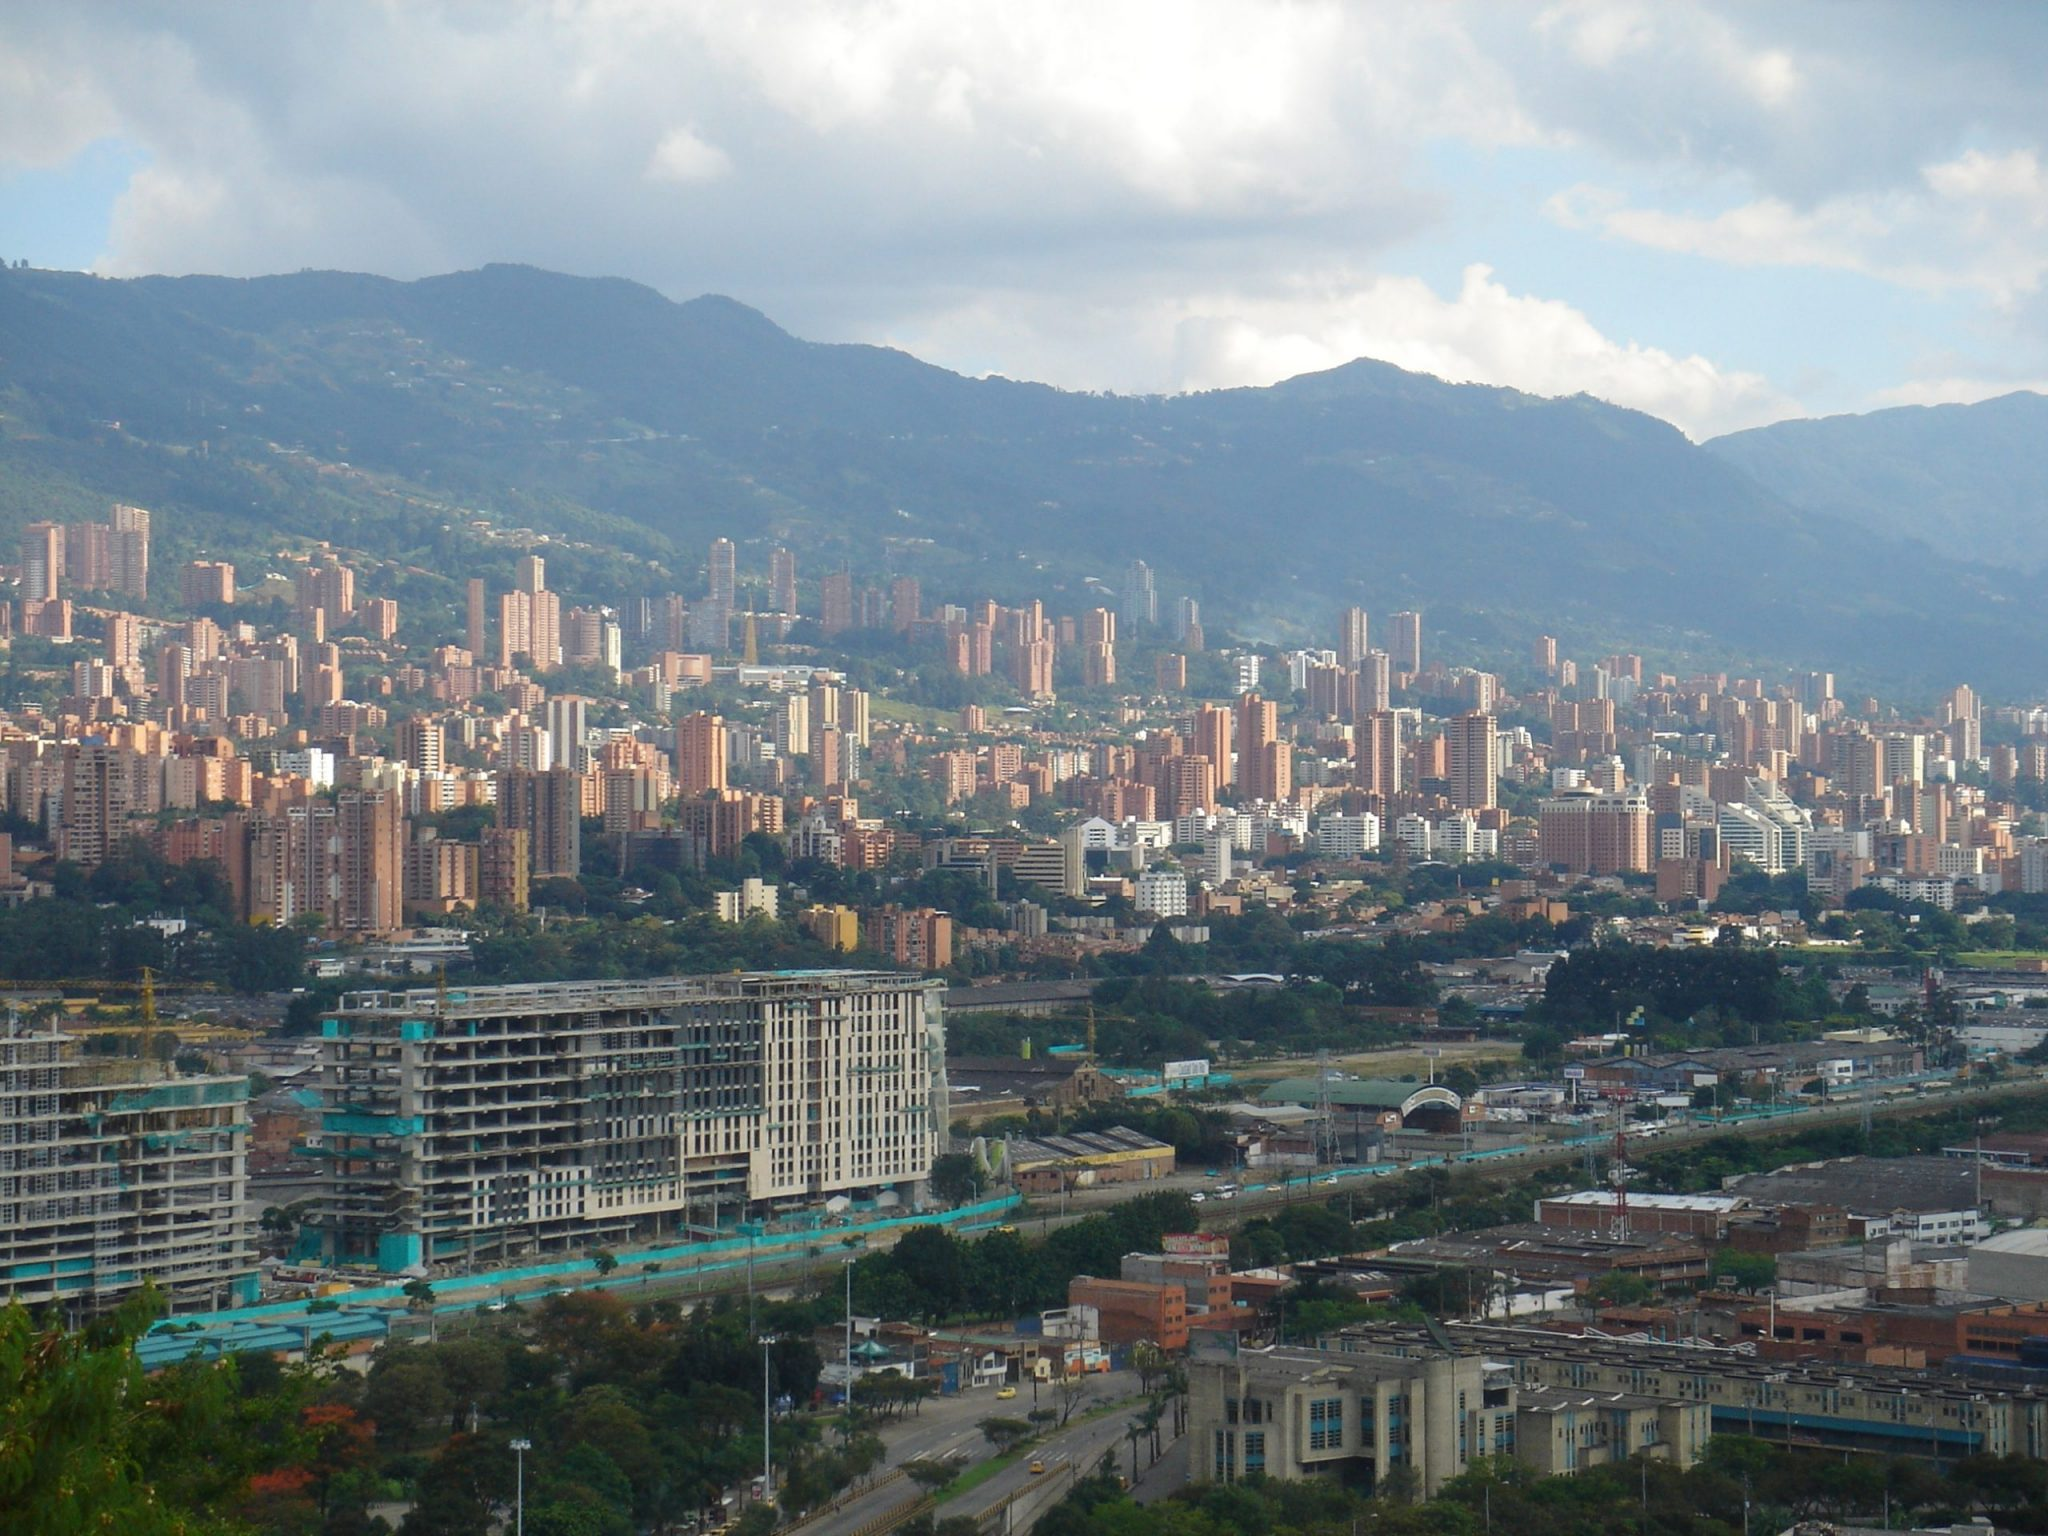 Medellin from the sky during travel restrictions.